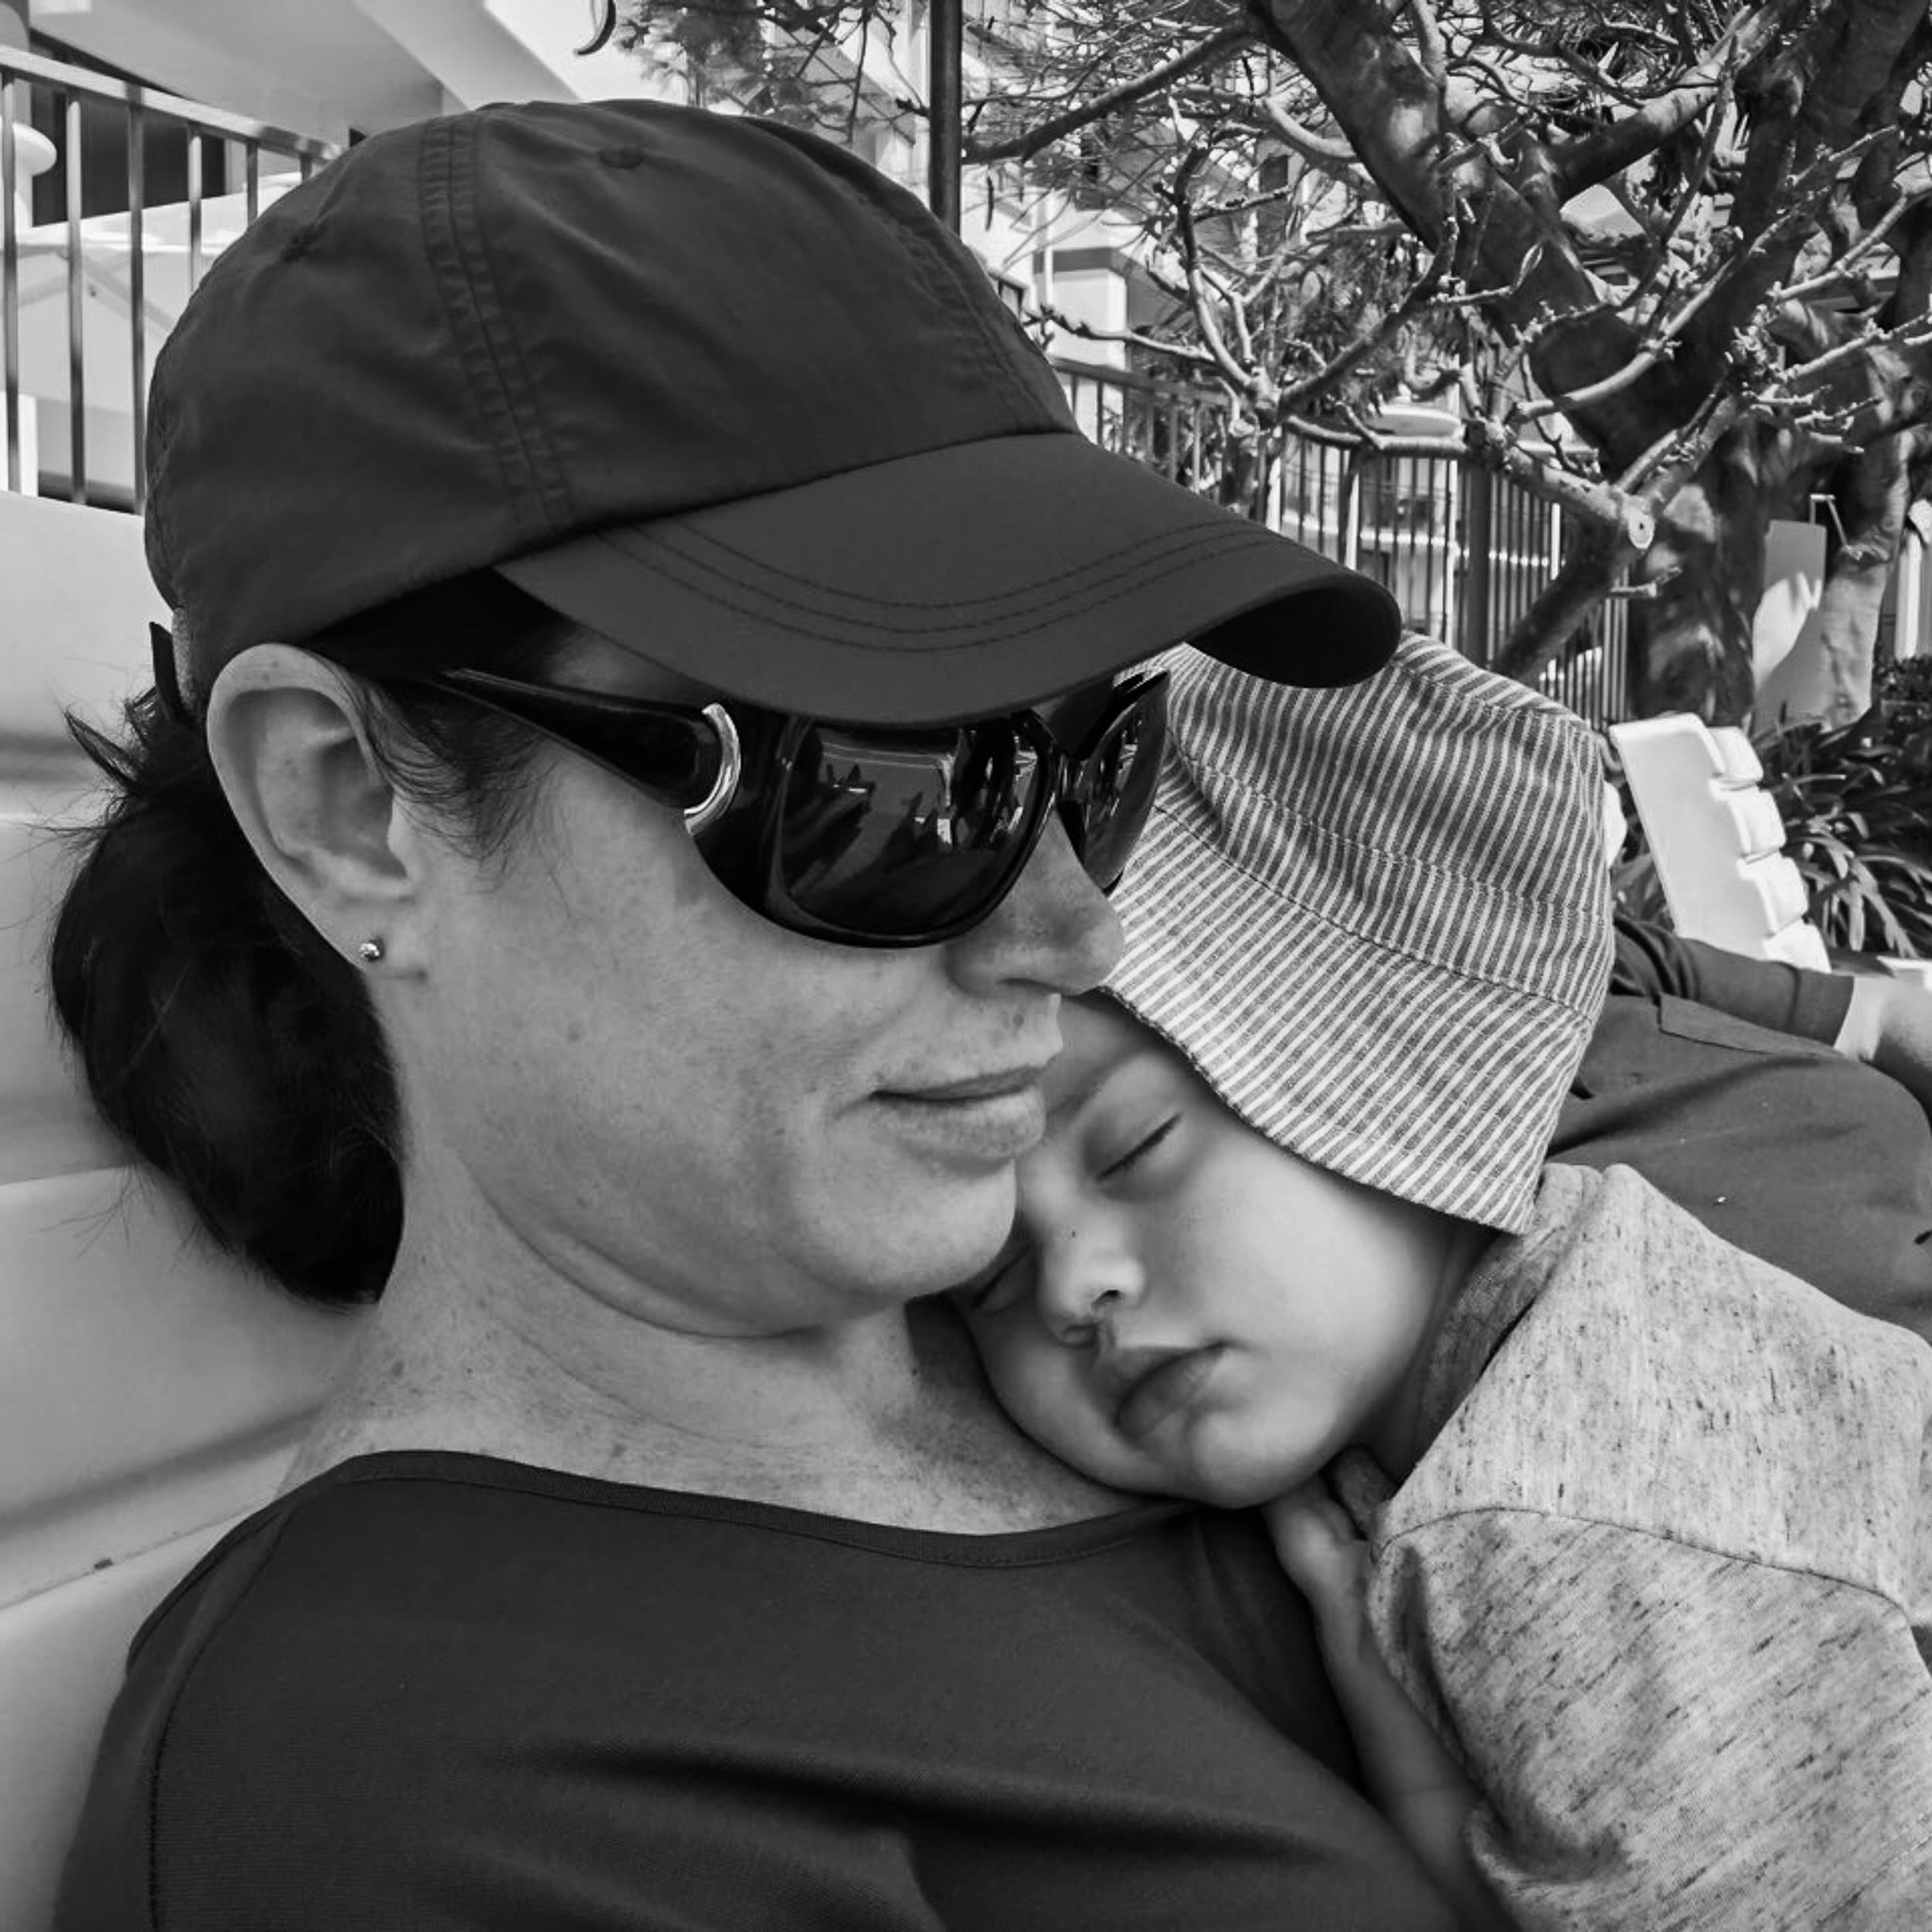 Little boy asleep and resting on woman